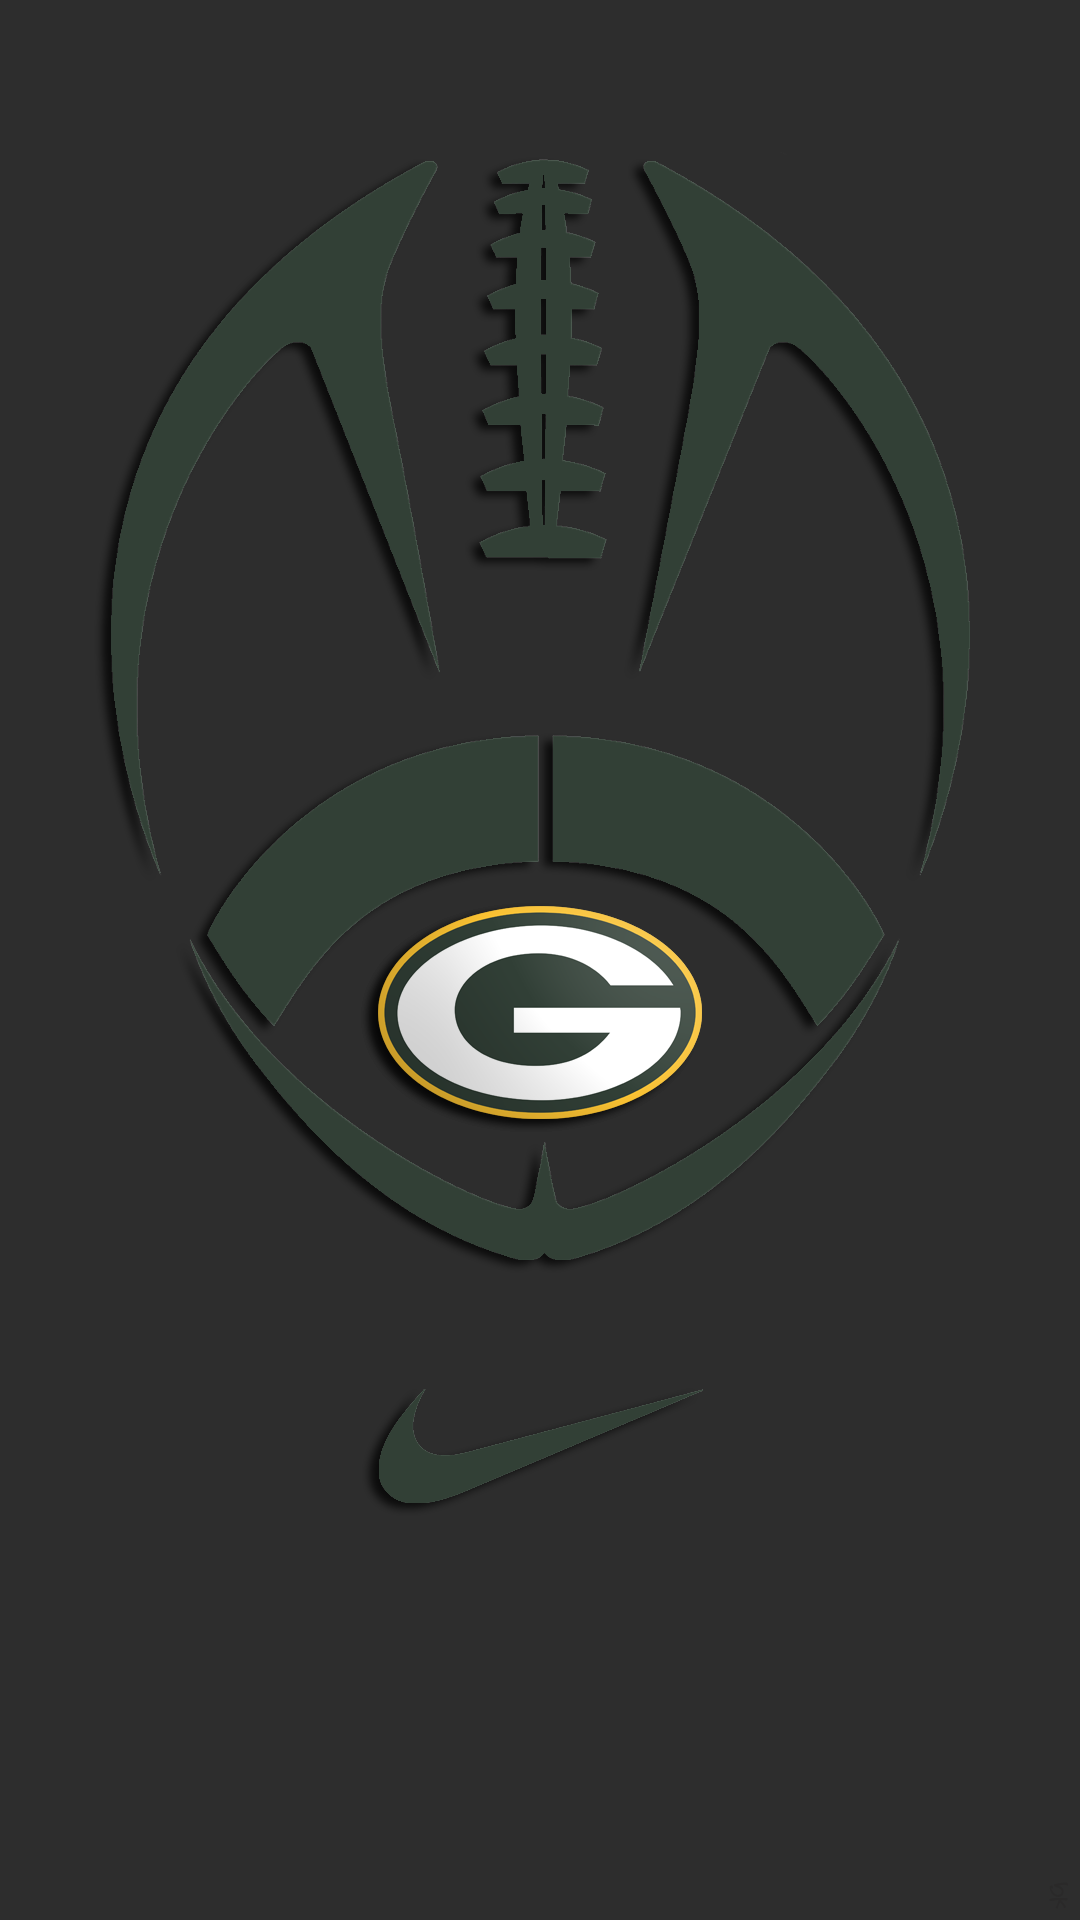 Green Bay Packers 01 Png 580637 1080 1920 Green Bay Packers